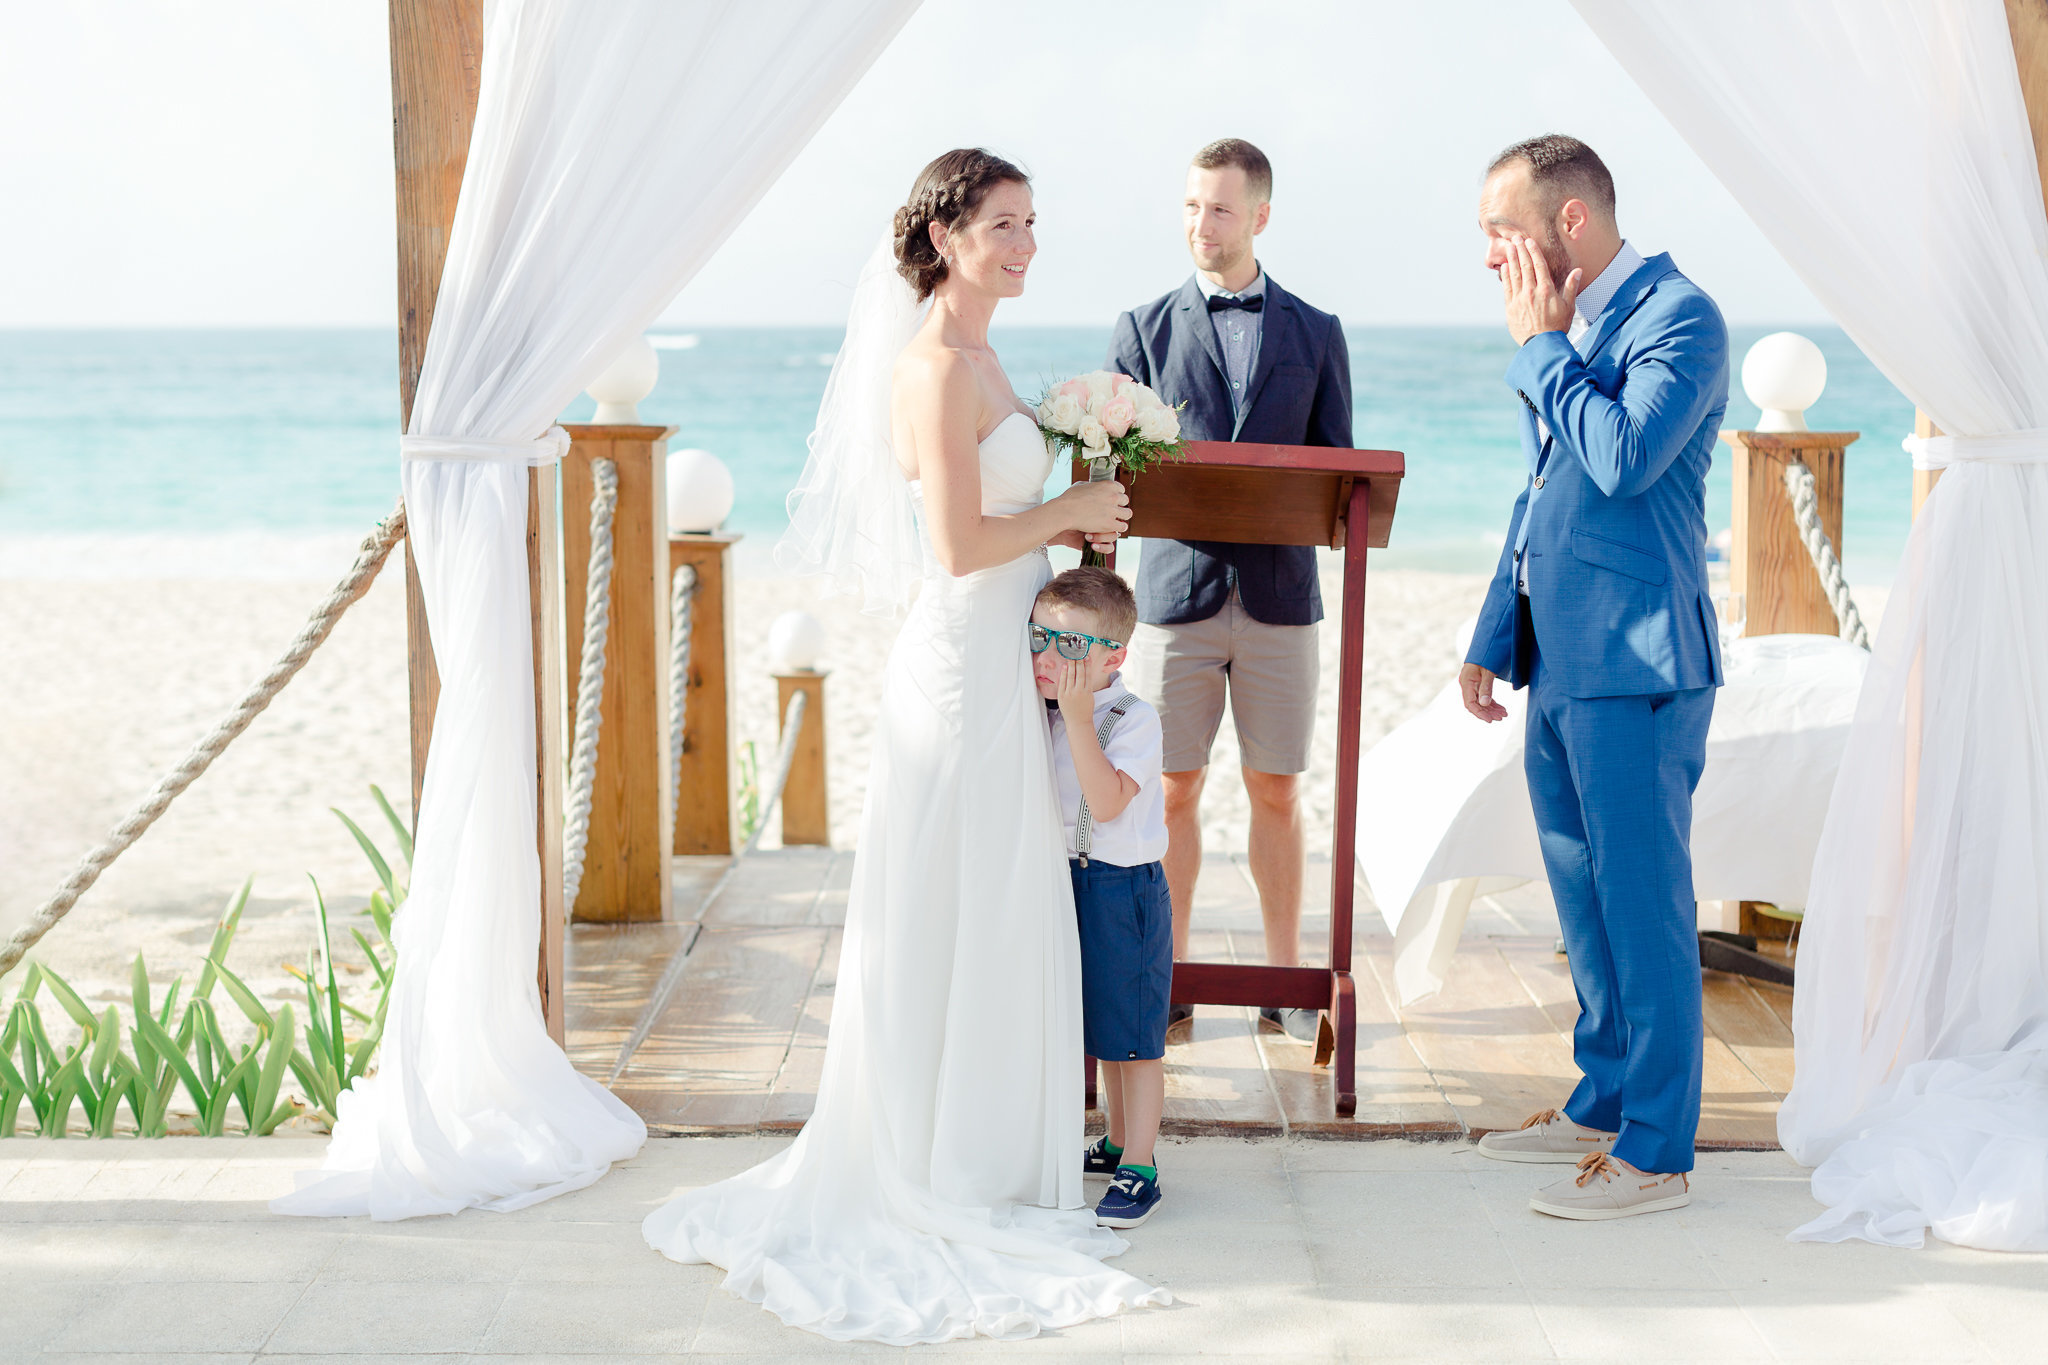 photographe-mariage-punta-cana-republique-dominicaine-lisa-renault-photographie-wedding-destination-photographer-41